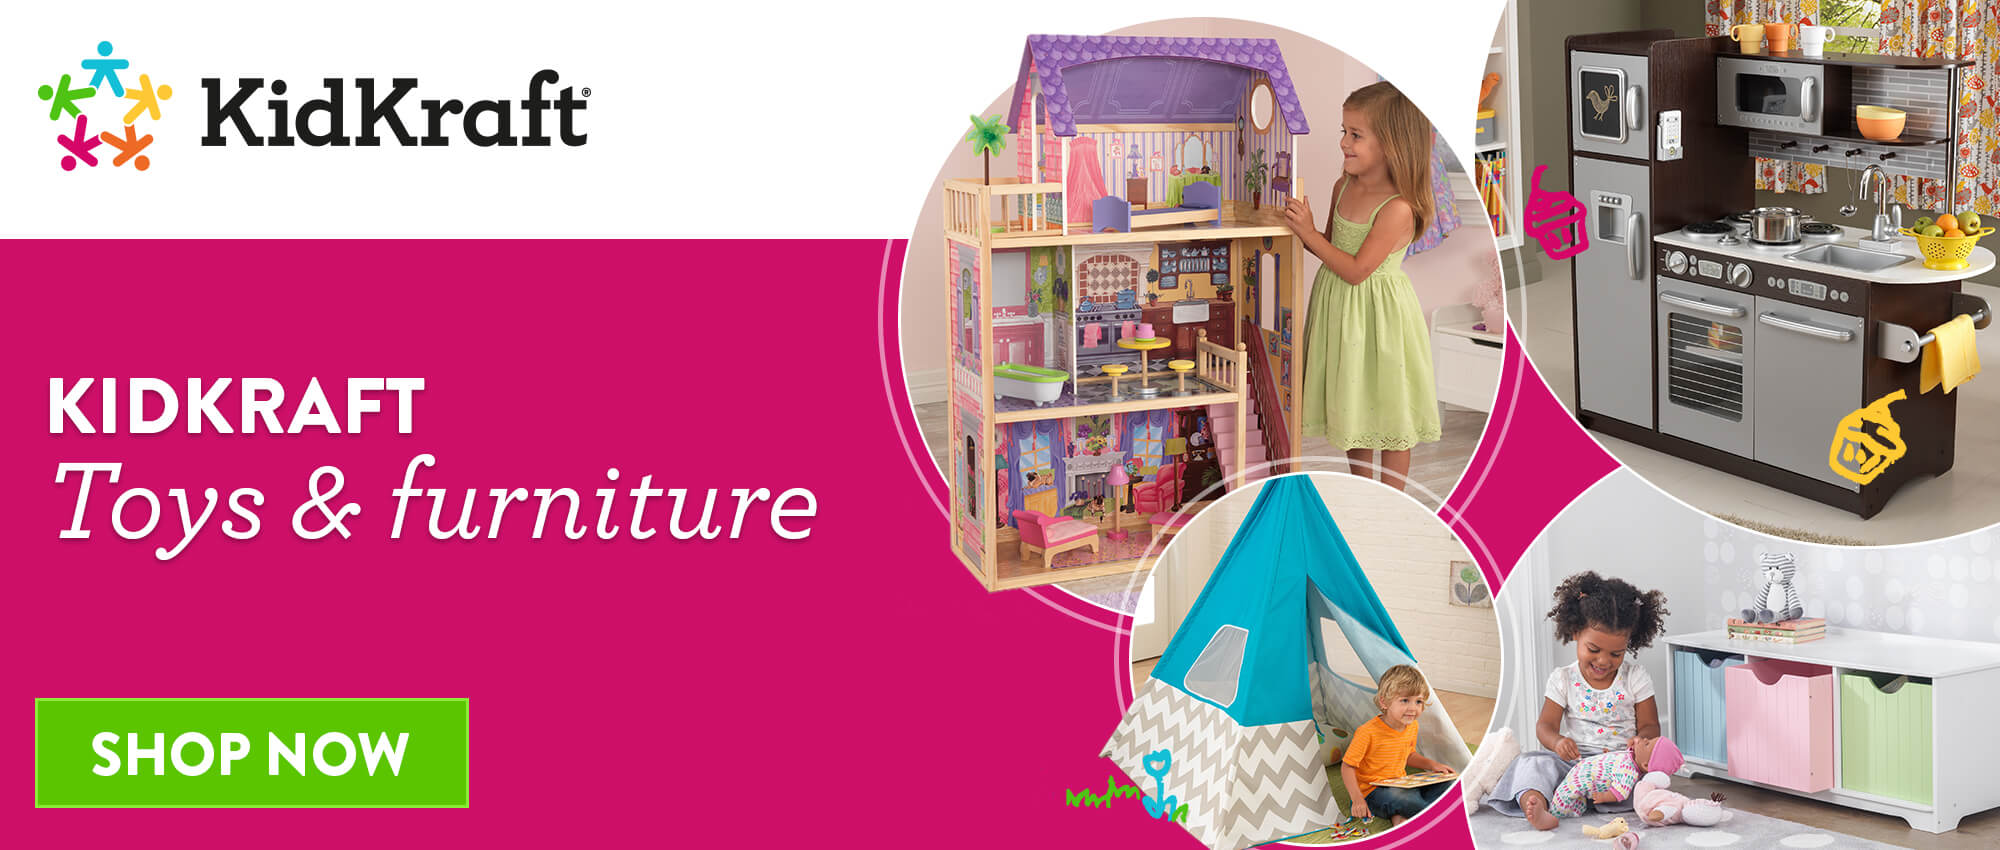 KidKraft Toys & Furniture 1